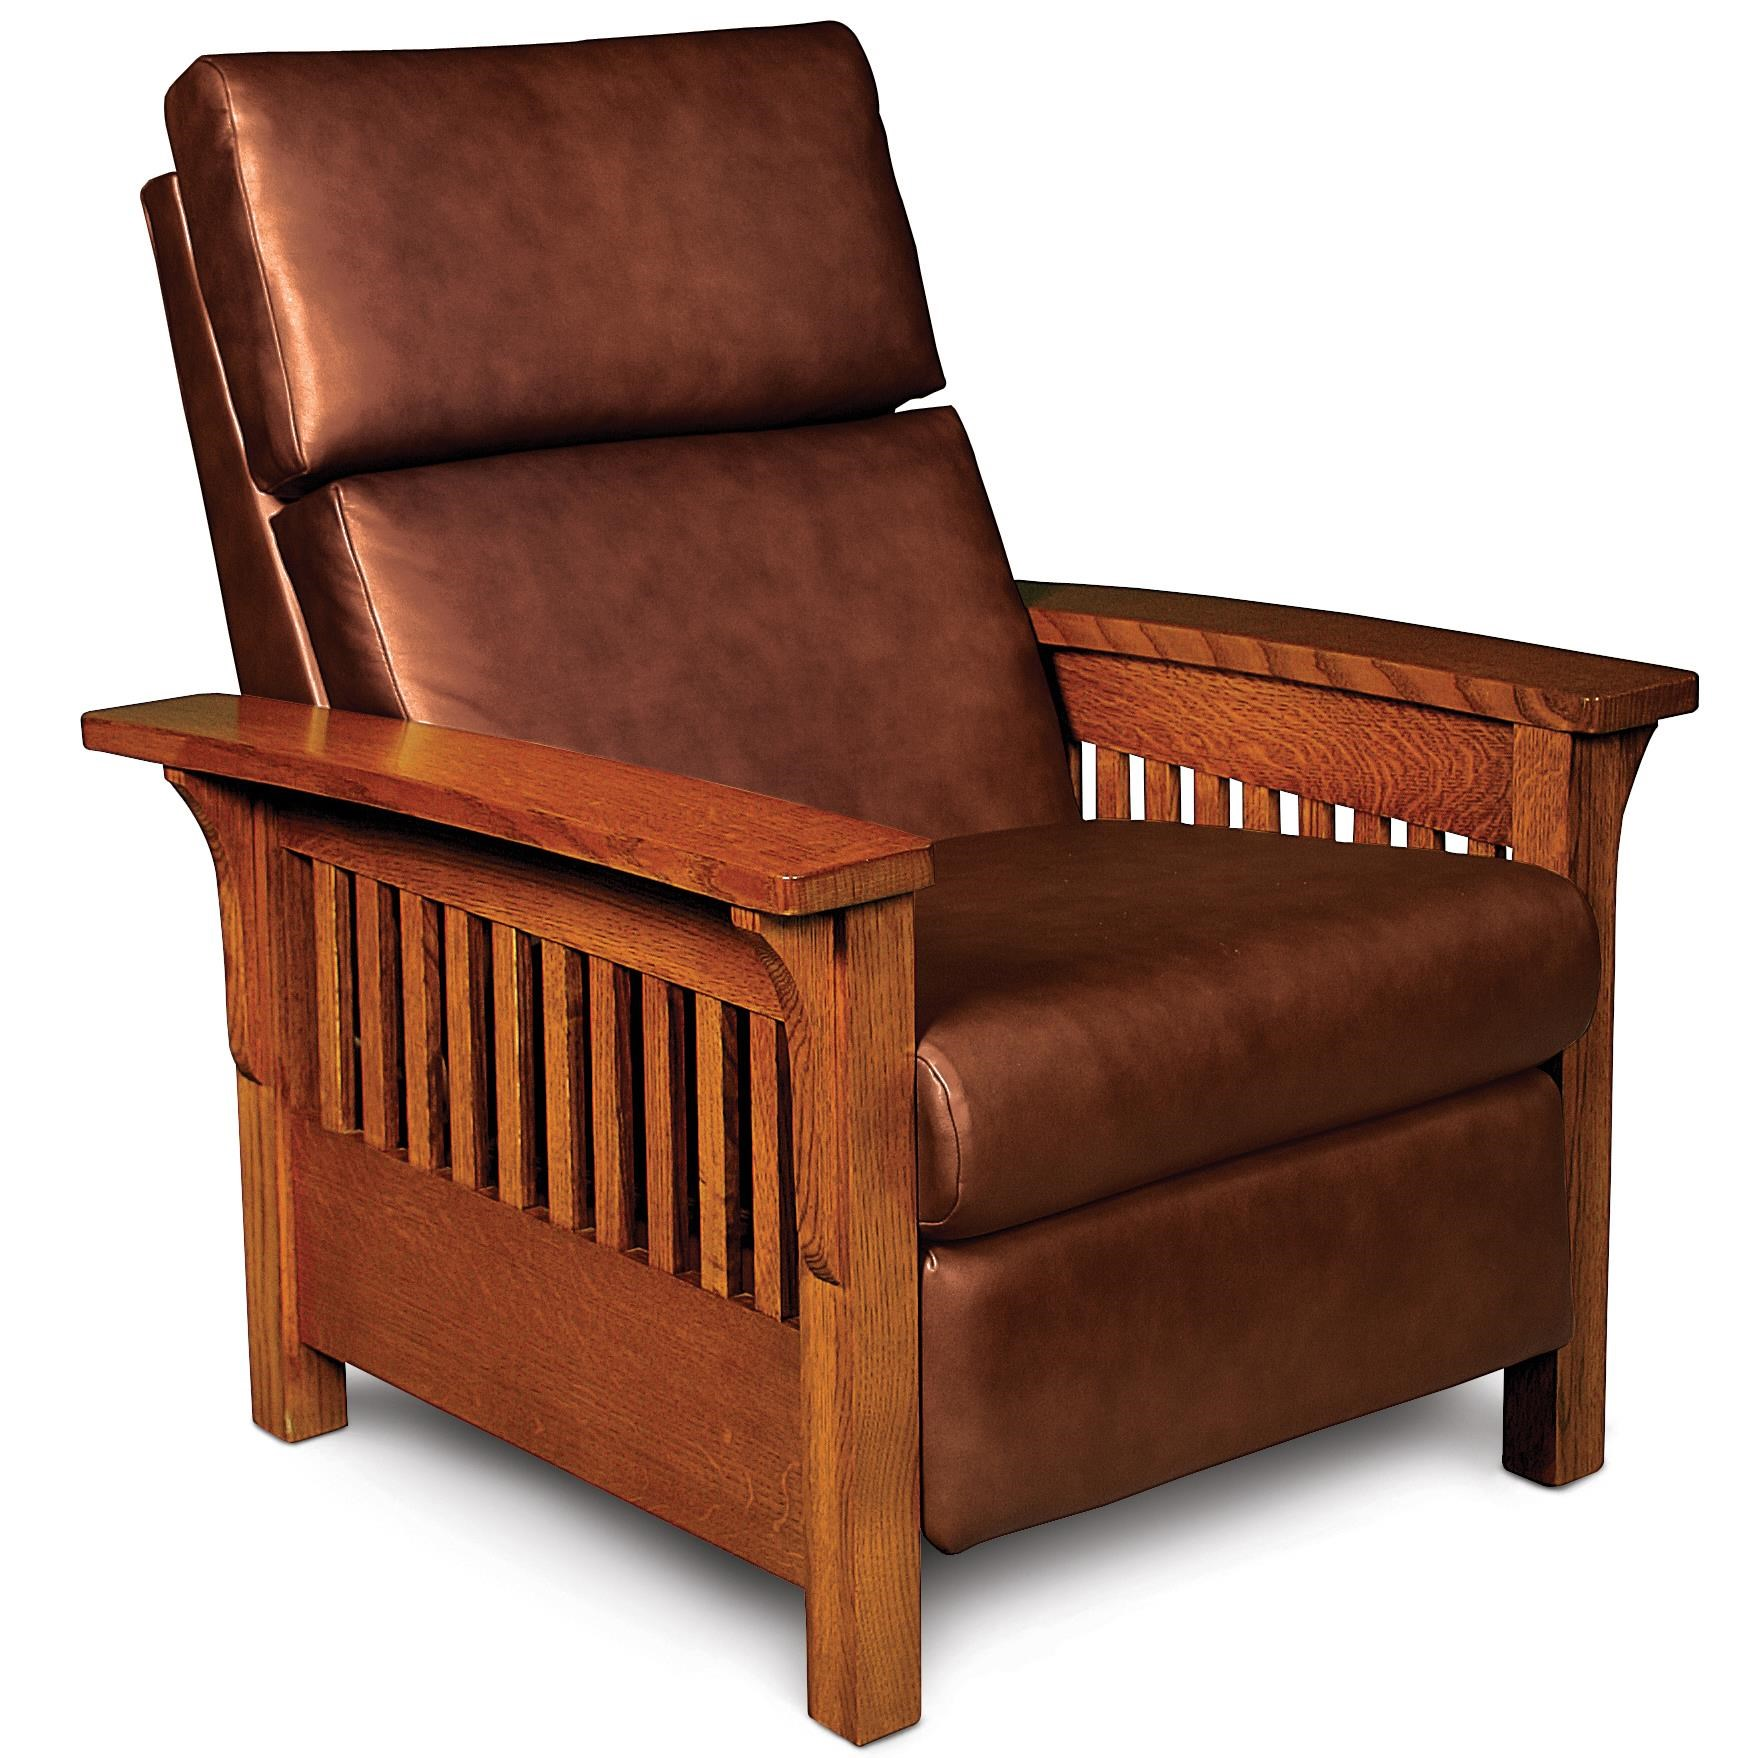 Simply Amish Grand Rapids High Leg Recliner With Wood Arms